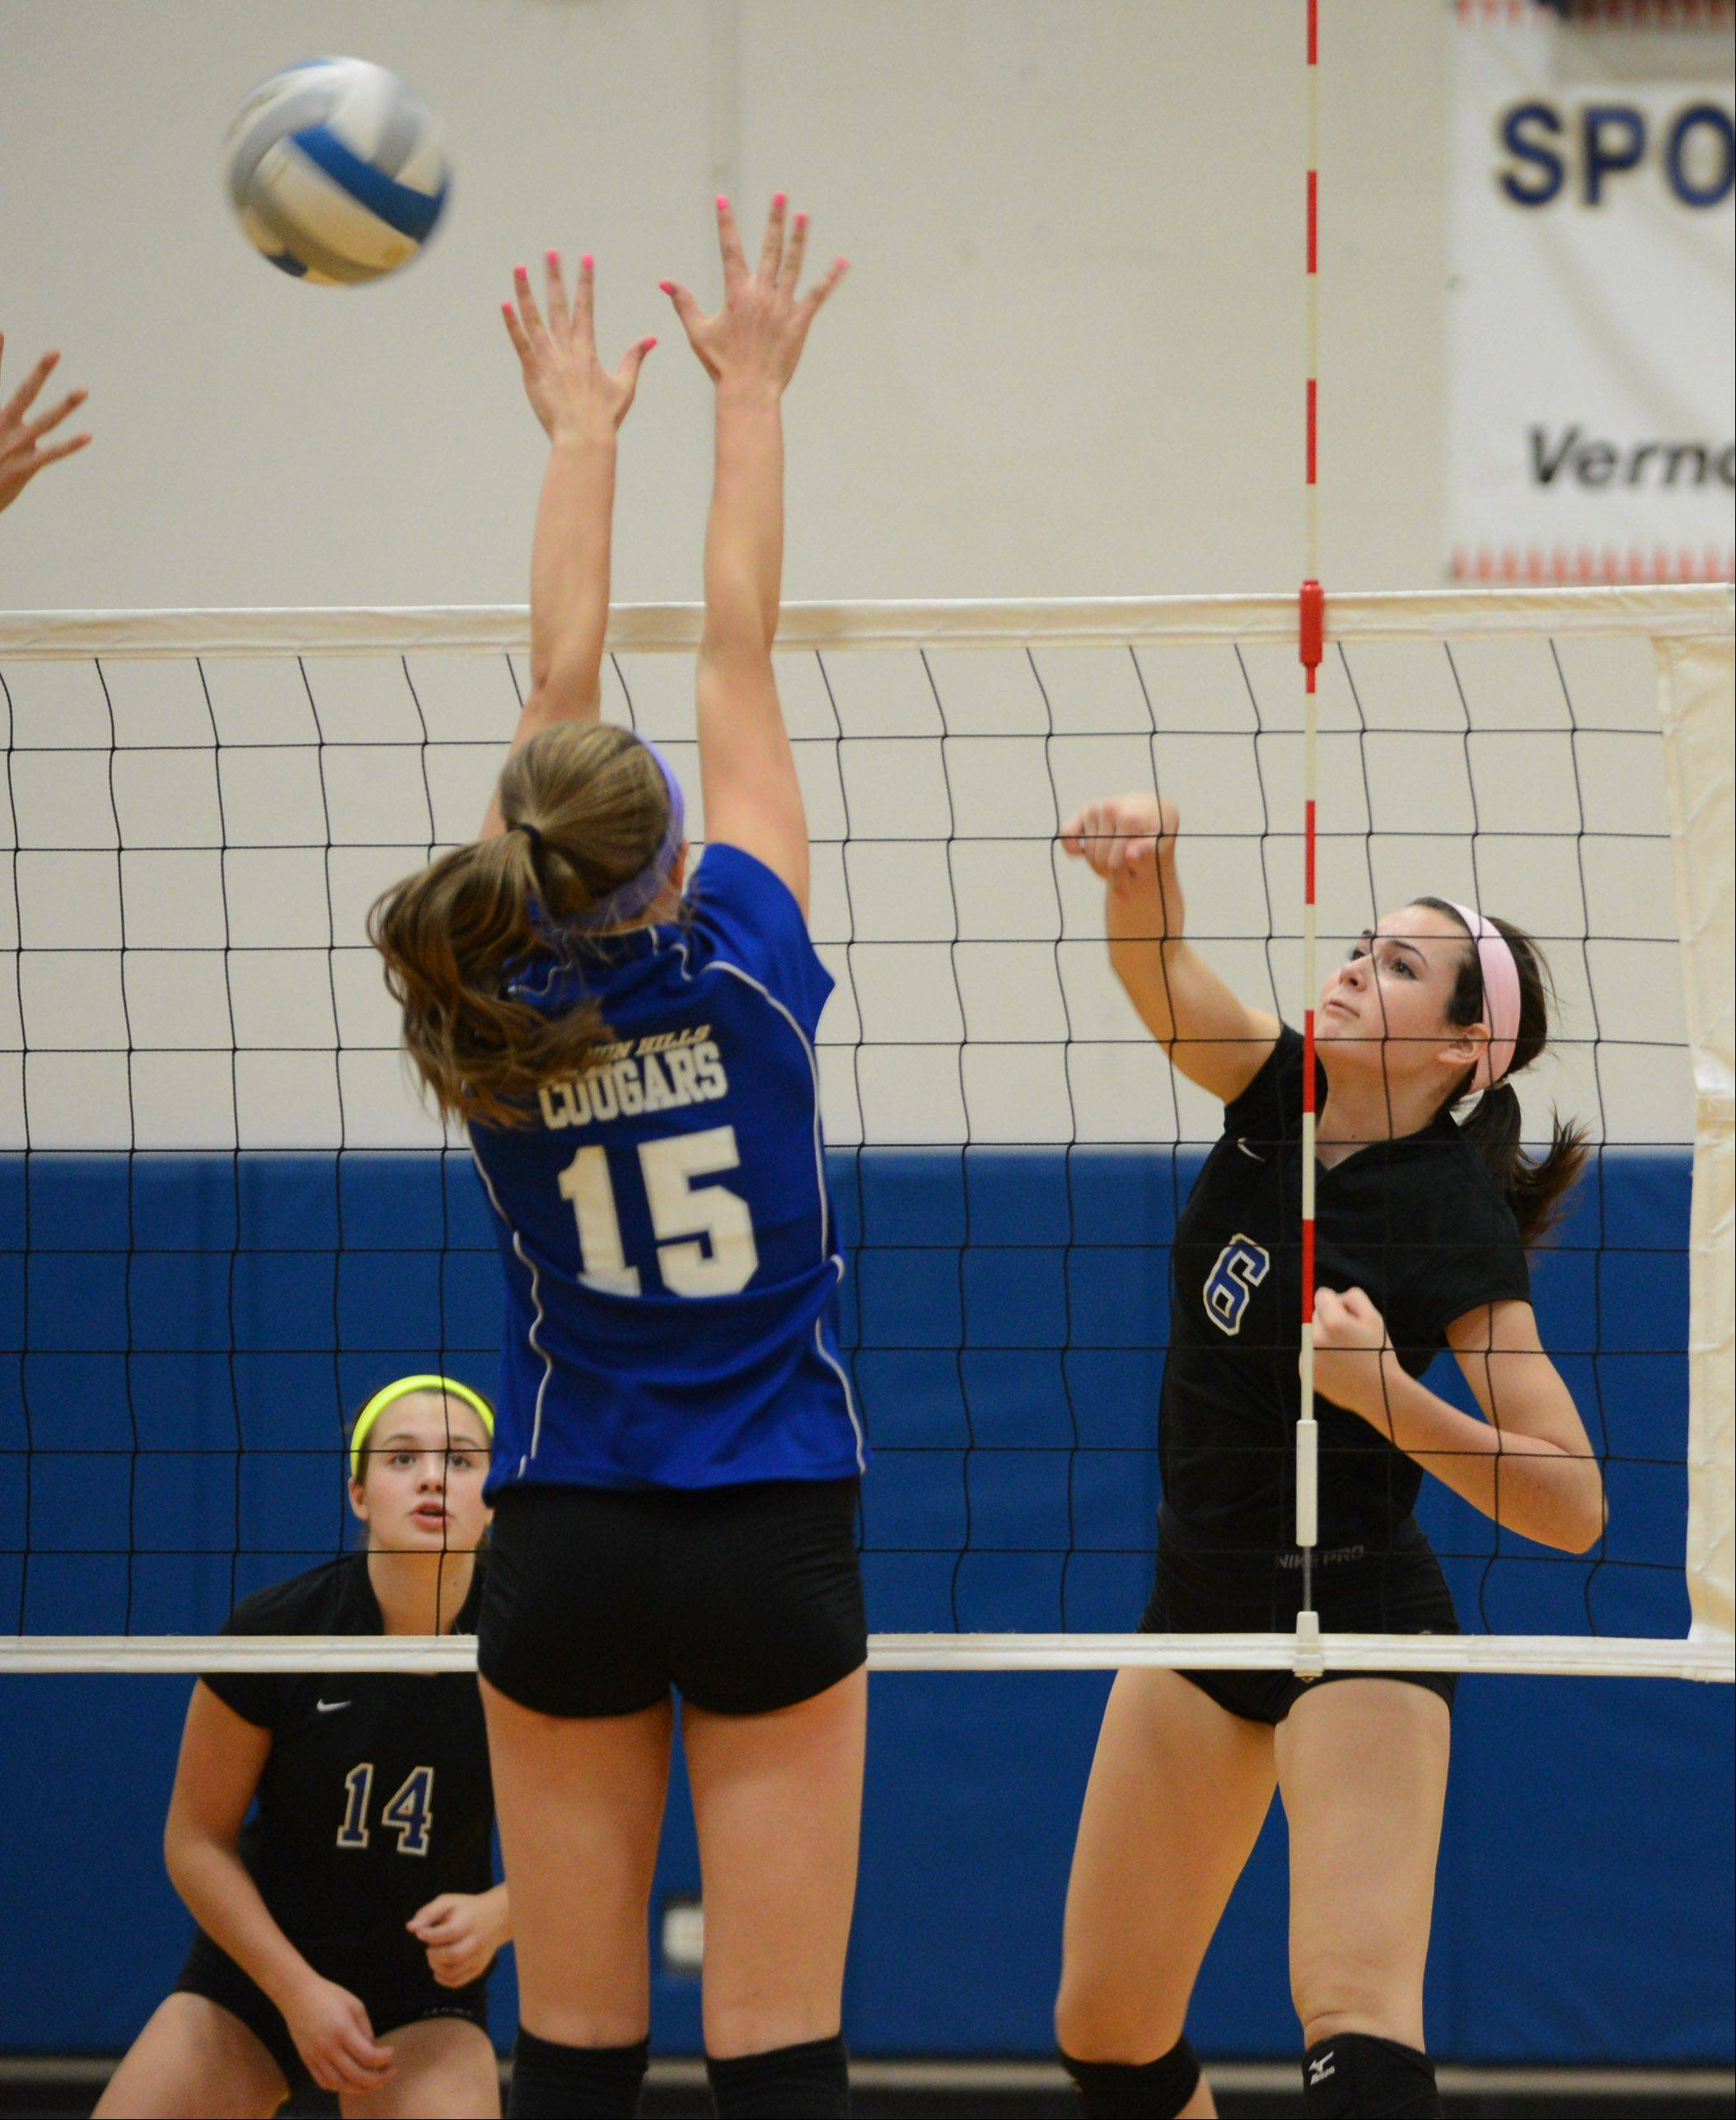 Lakes' McKenna Lahr (6) knocks the ball past Vernon Hills' Katie Brettmann during Wednesday's volleyball game in Vernon Hills.